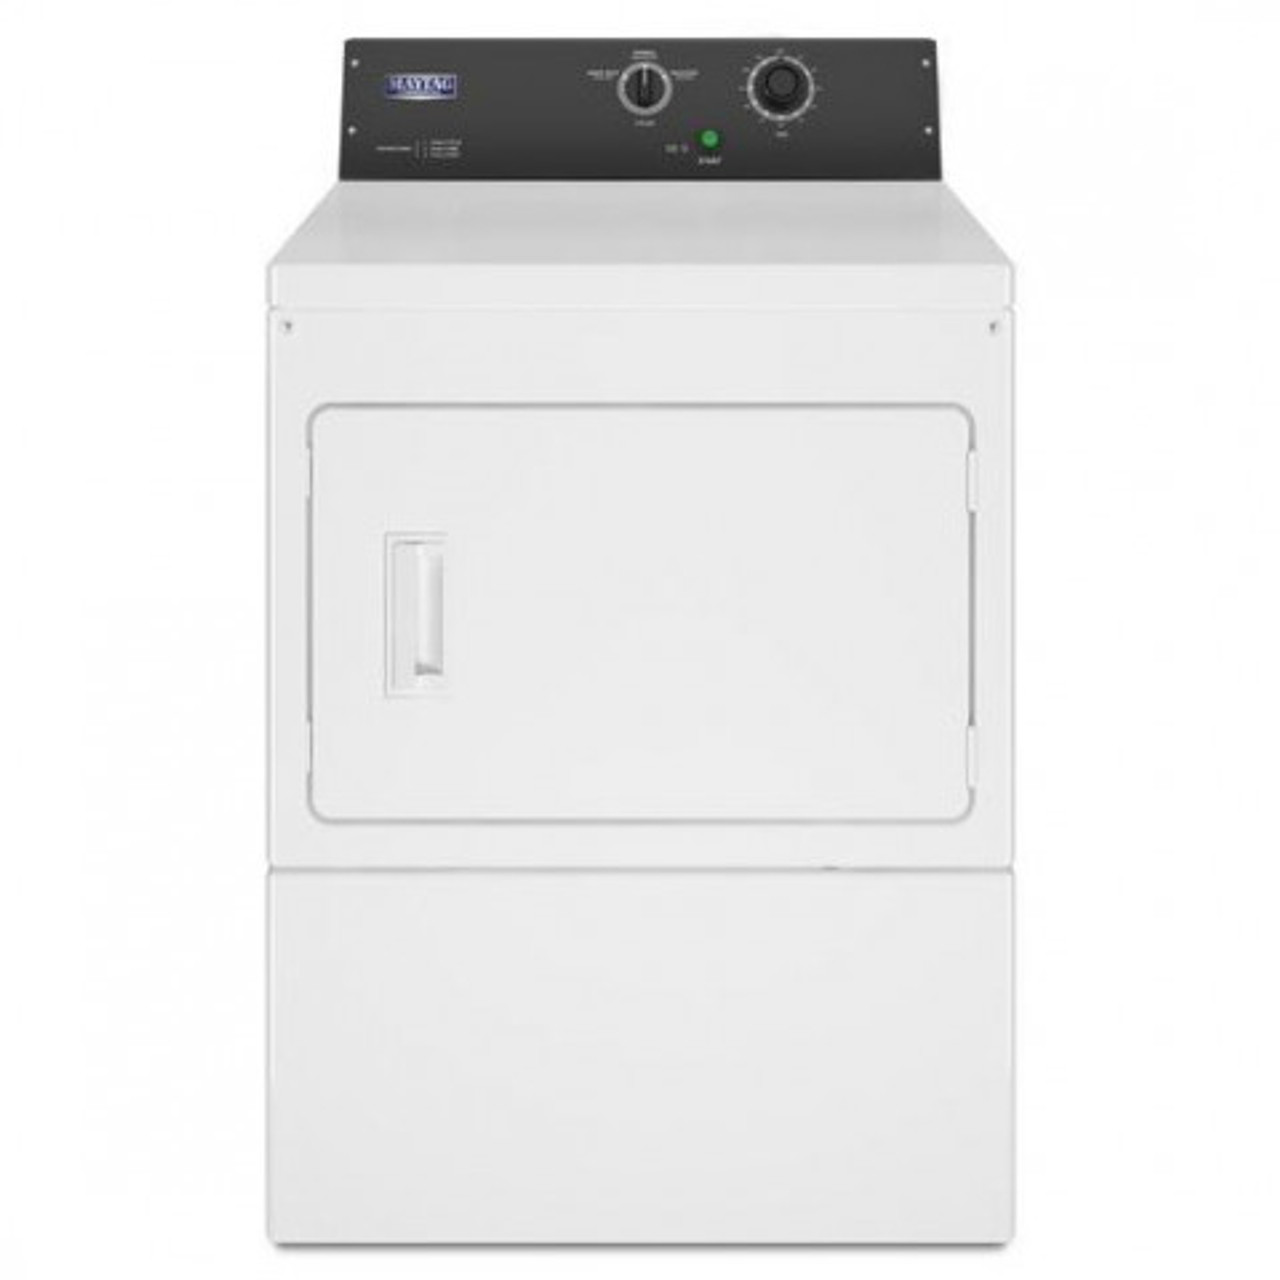 Maytag MDE20MN - Maytag Commercial Single-Load Electric Dryer -  Non Coin